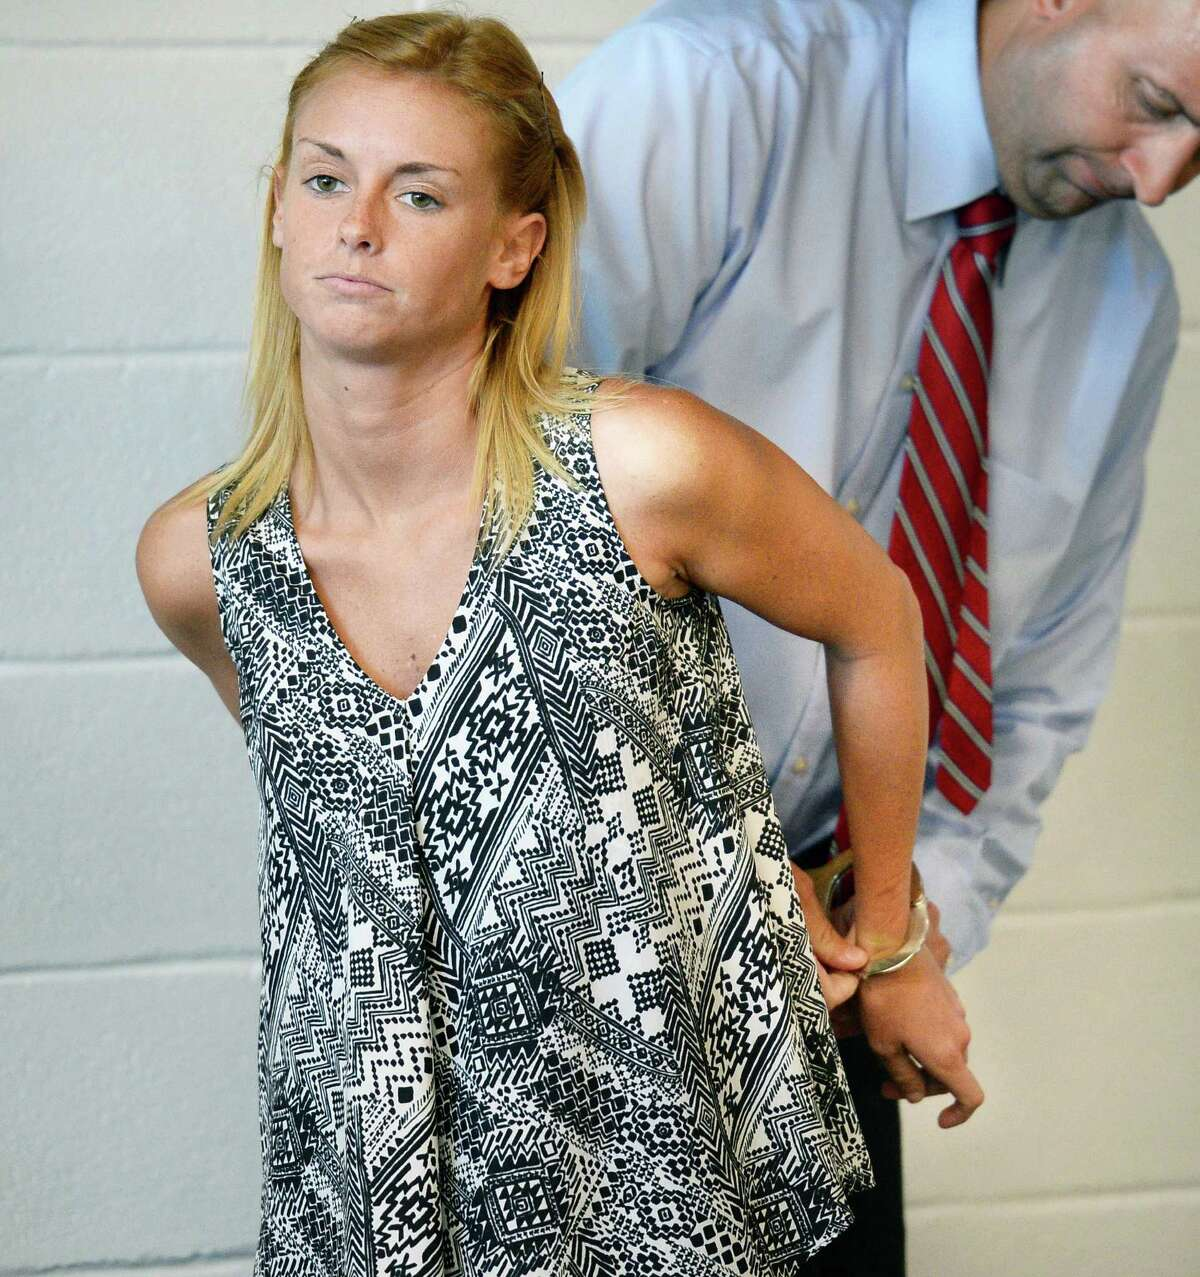 Kristine Tiger has her hand cuffs removed during her arraignment on Friday July 29, 2016, at Lake George Town Court in Lake George, NY. (John Carl D'Annibale / Times Union)